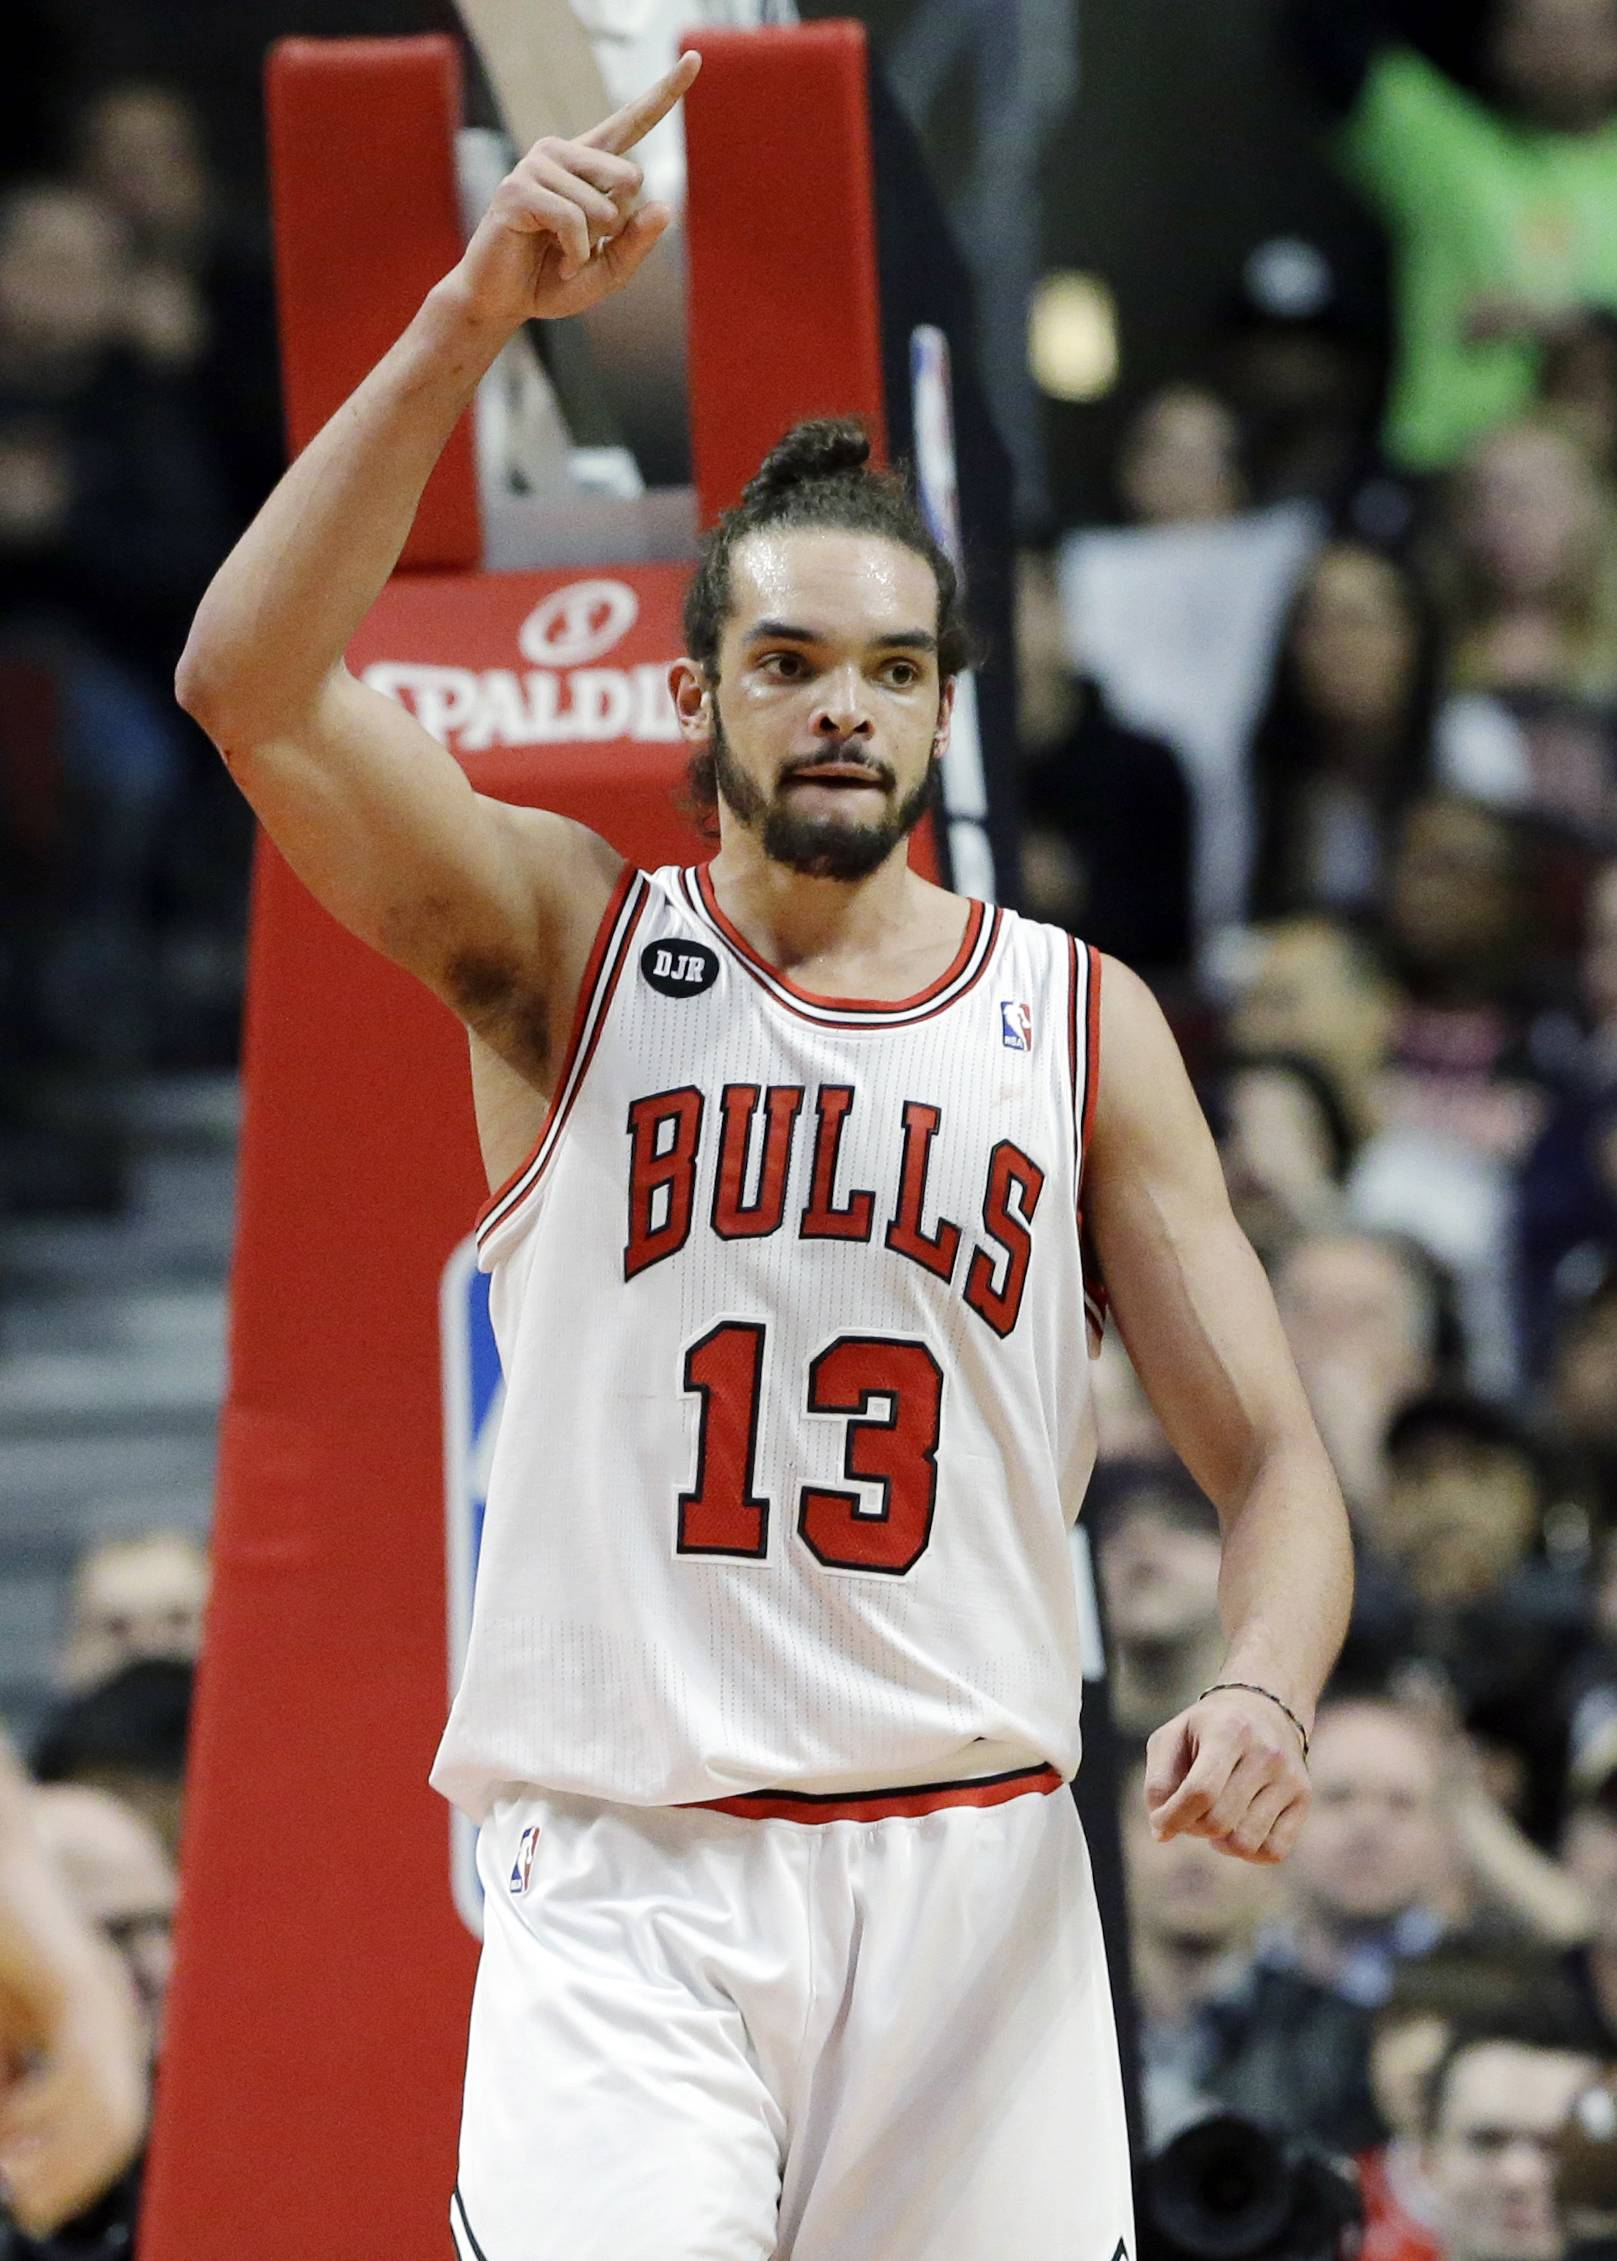 Chicago Bulls center Joakim Noah celebrates after scoring a basket during the first half of an NBA basketball game against the Houston Rockets in Chicago on Thursday, March 13, 2014.